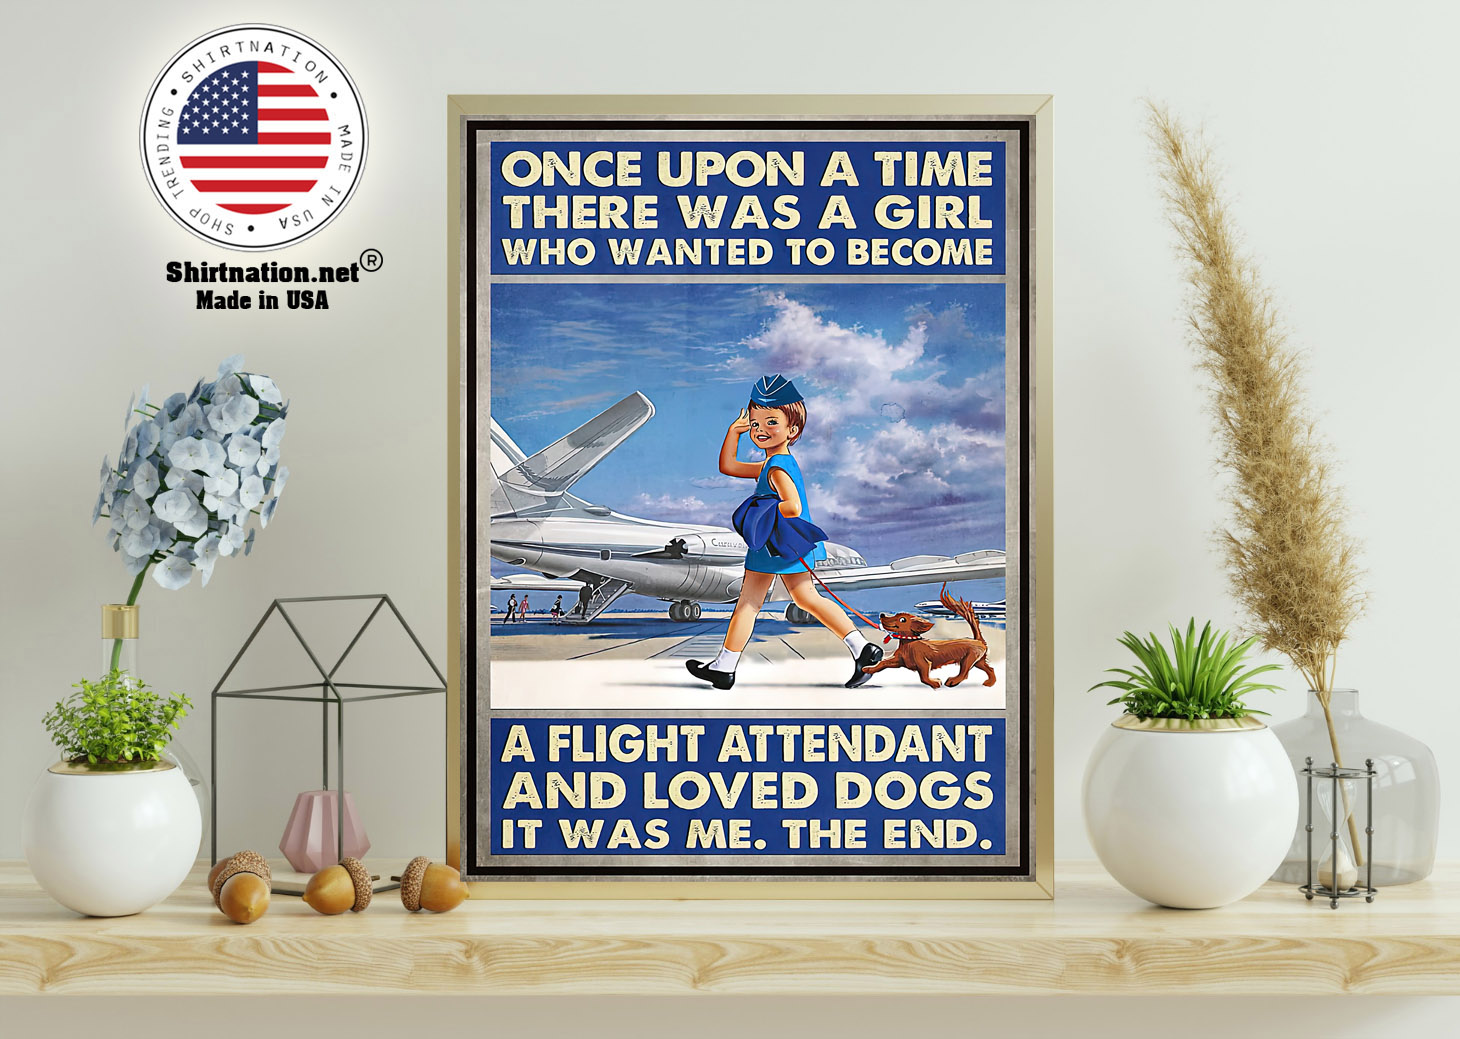 Once upon a time there was a girl who wanted to become a flight attendant and loved dogs poster 11